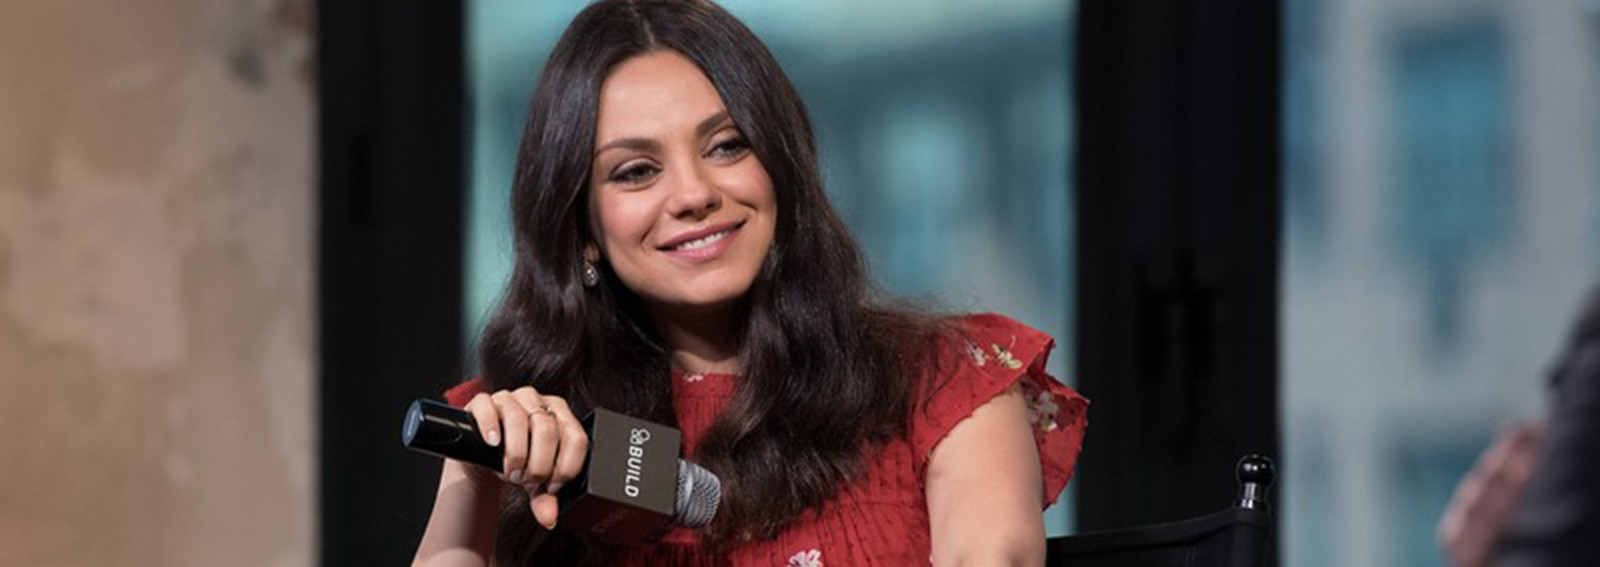 Mila Kunis on her go-to excuse for getting out of plans